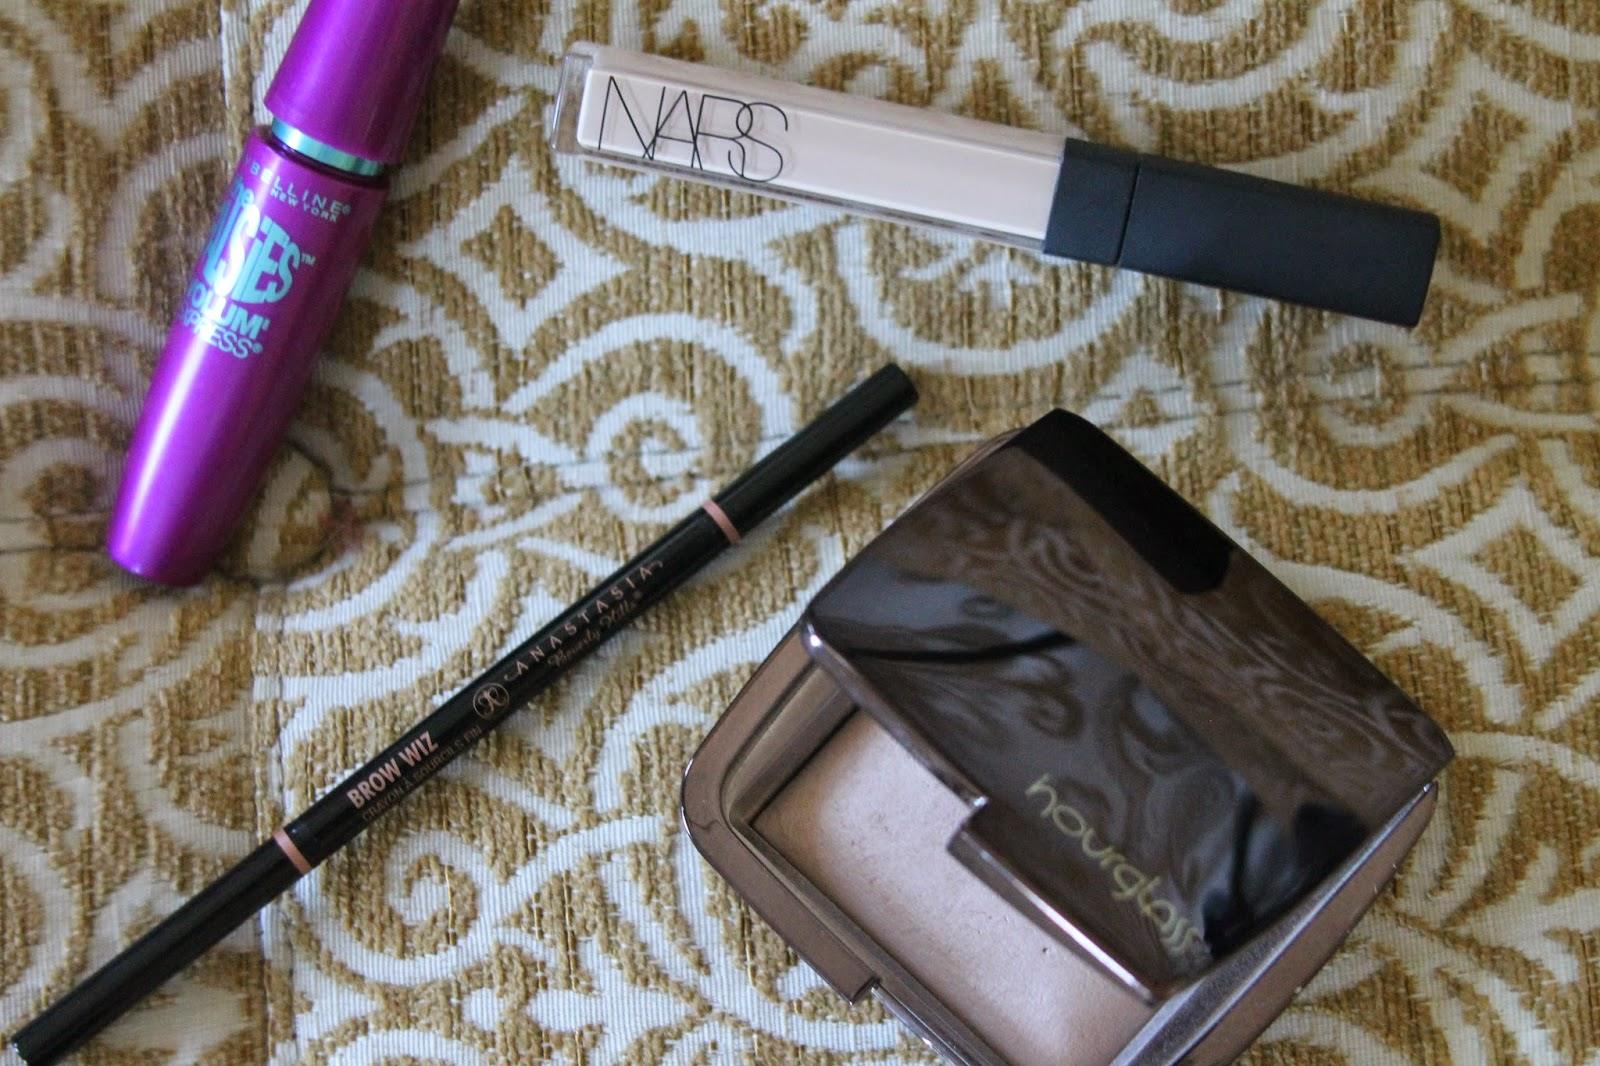 THE PRODUCTS I WON'T GO WITHOUT